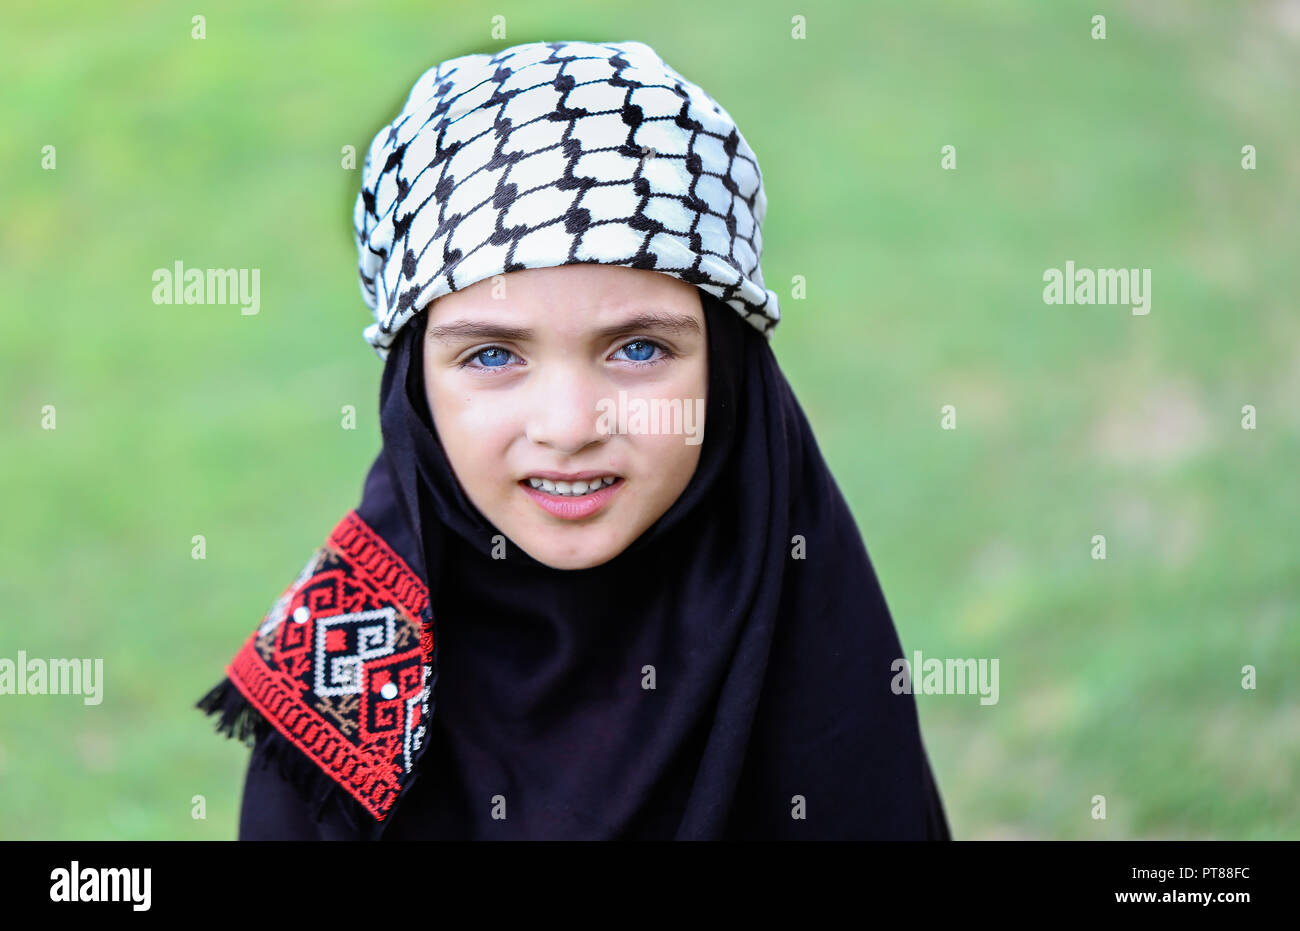 A photo of Palestinian girl with a traditional Arab Keffiyeh scarf on her head. - Stock Image